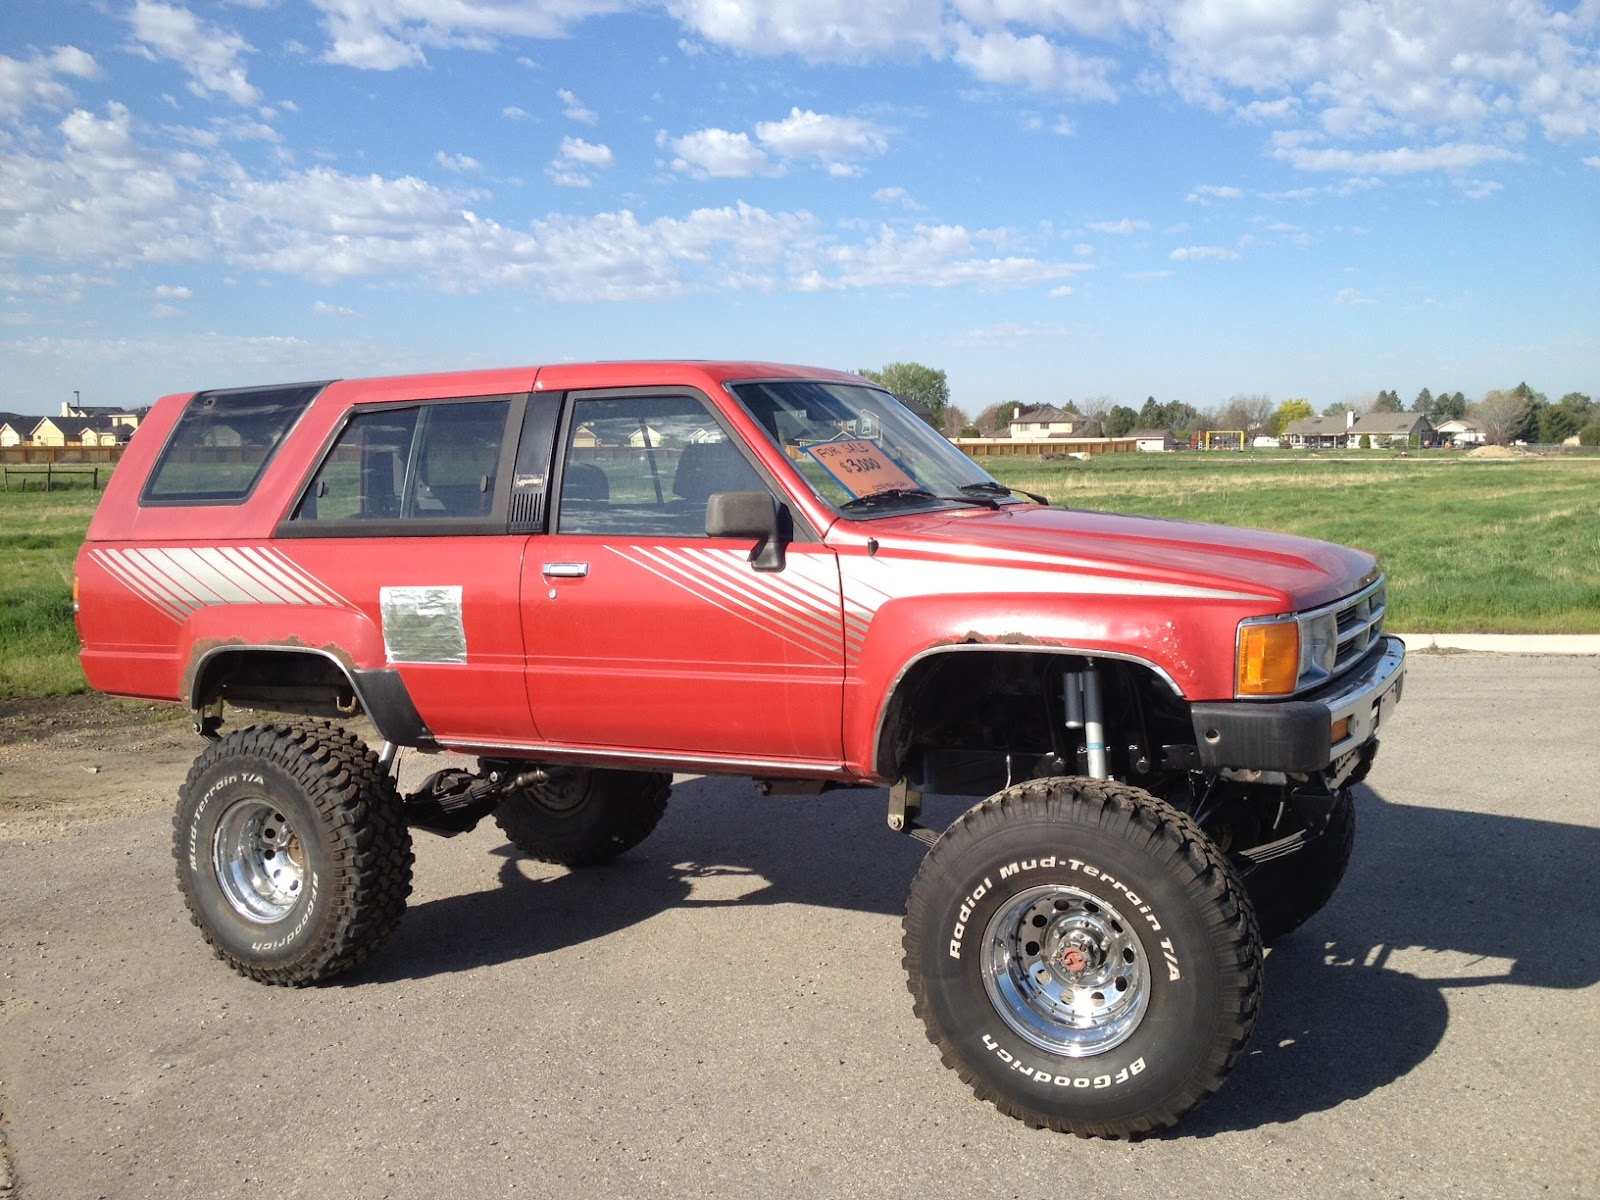 Middle Class Chops Boise 1988 Toyota 4Runner Rock Crawler SAS For Sale